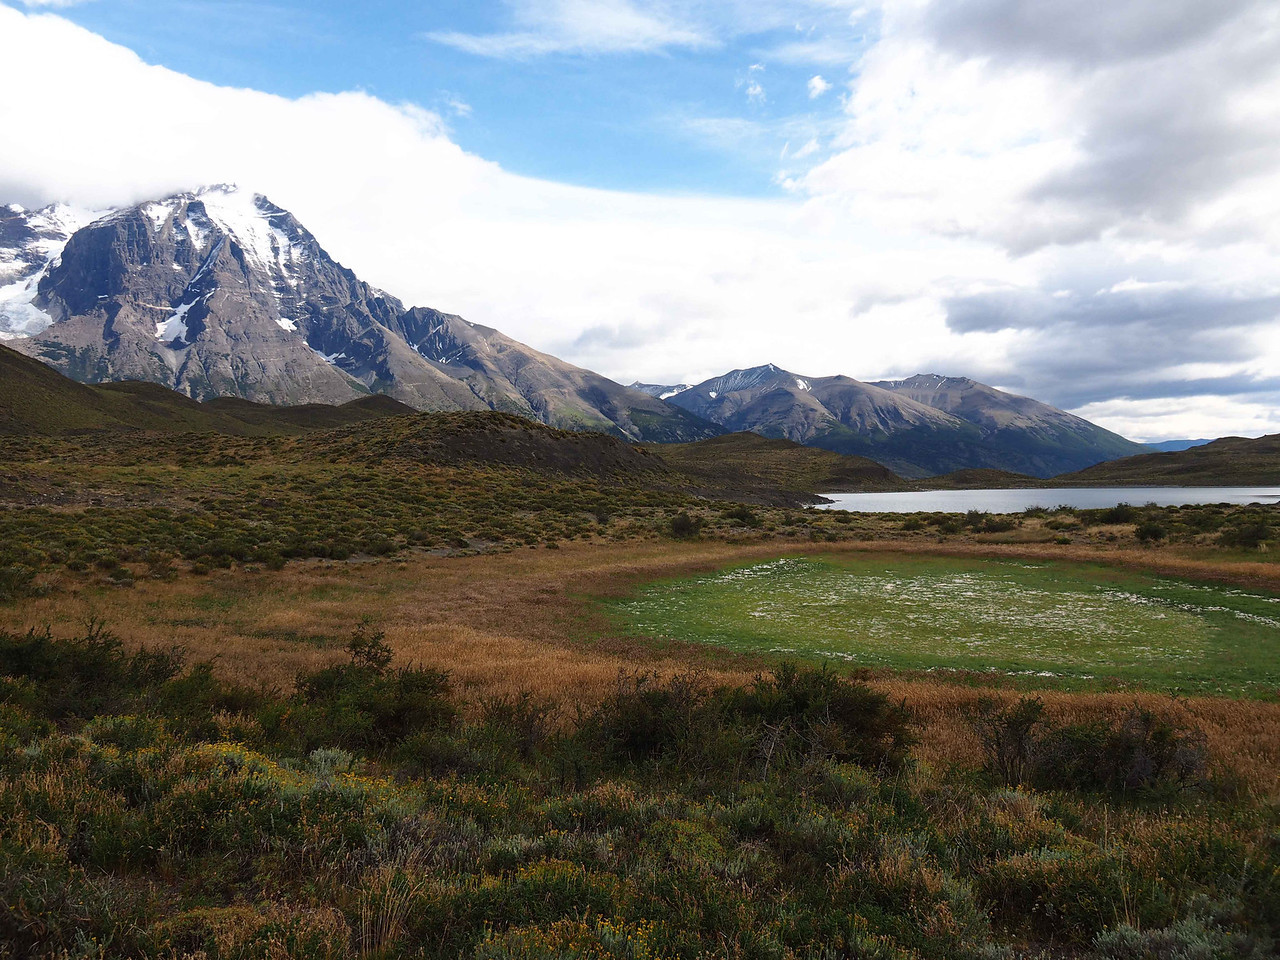 View of the mountains from the pampas, Torres del Paine NP